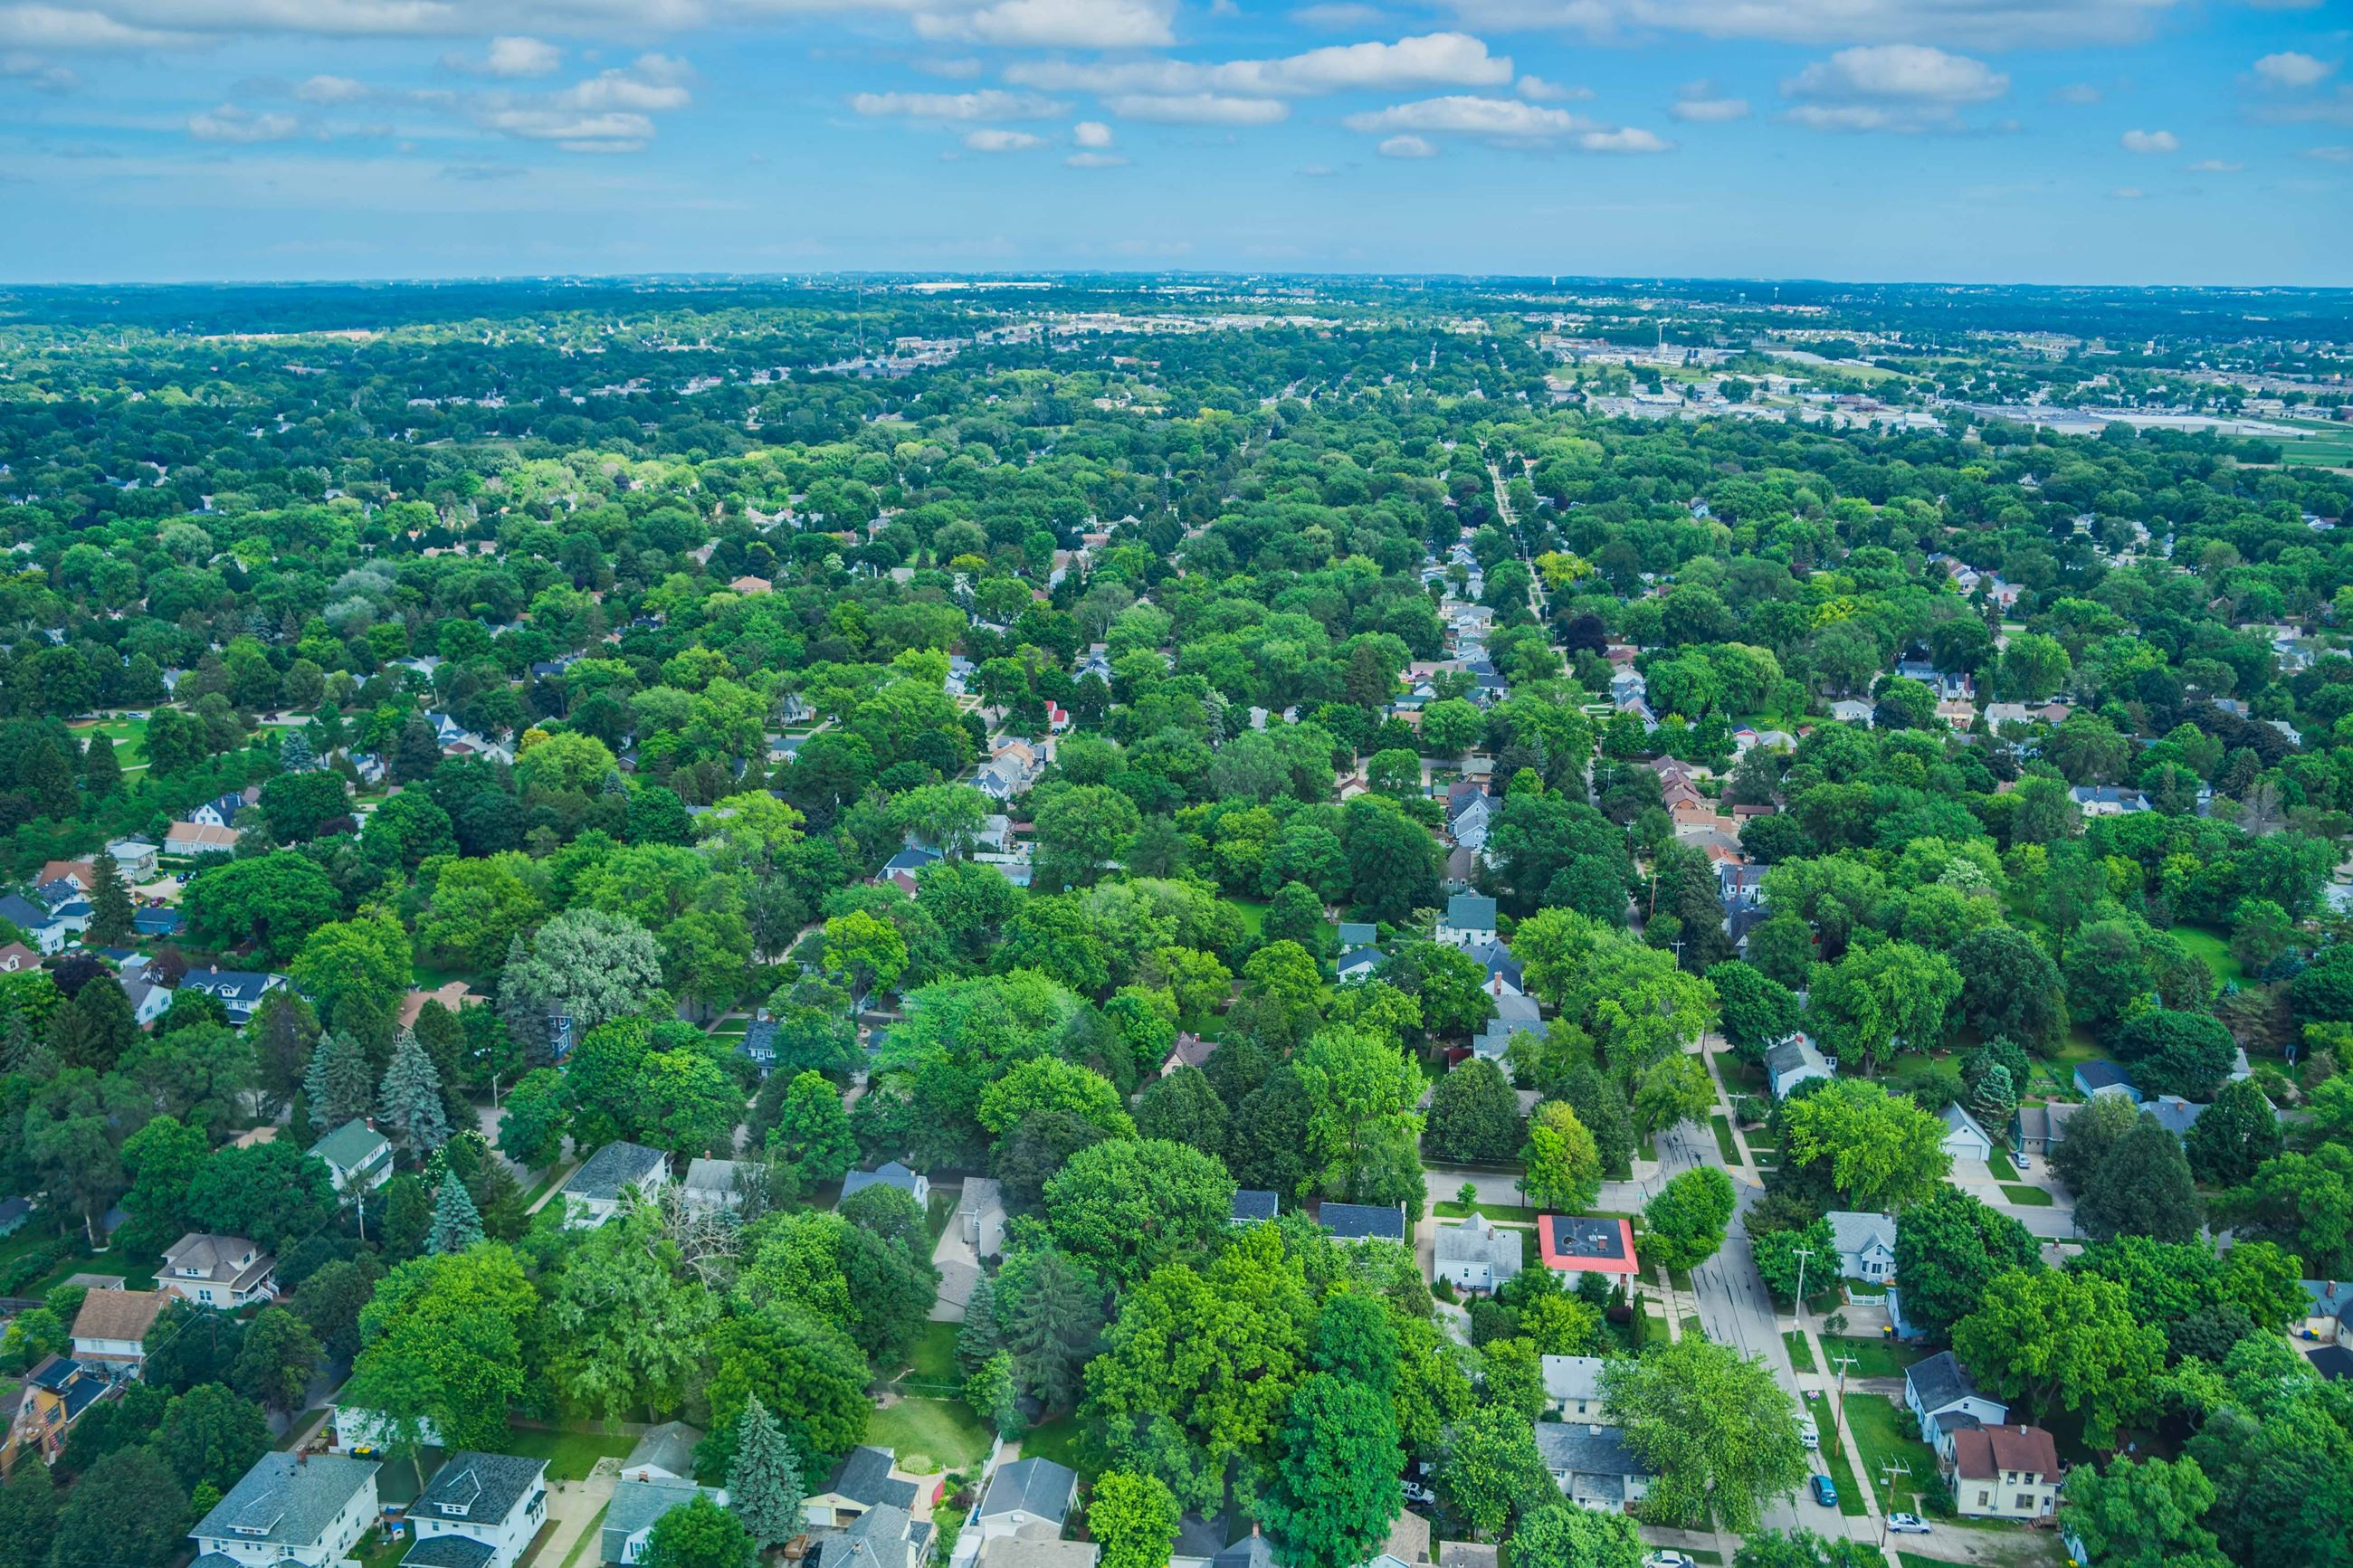 Arial View of Neighborhood Full of Trees